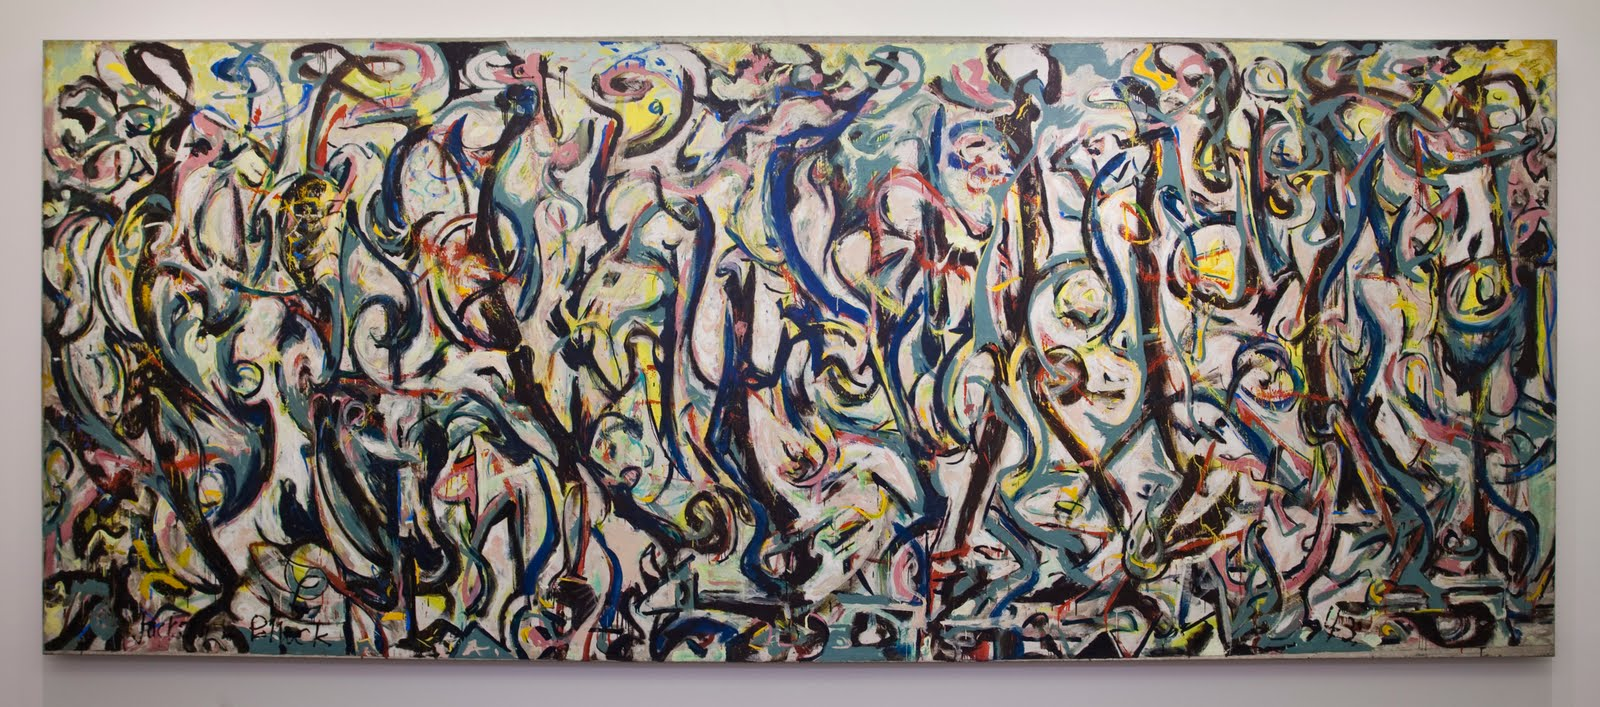 The common curator the value of jackson pollock 39 s mural for Mural jackson pollock